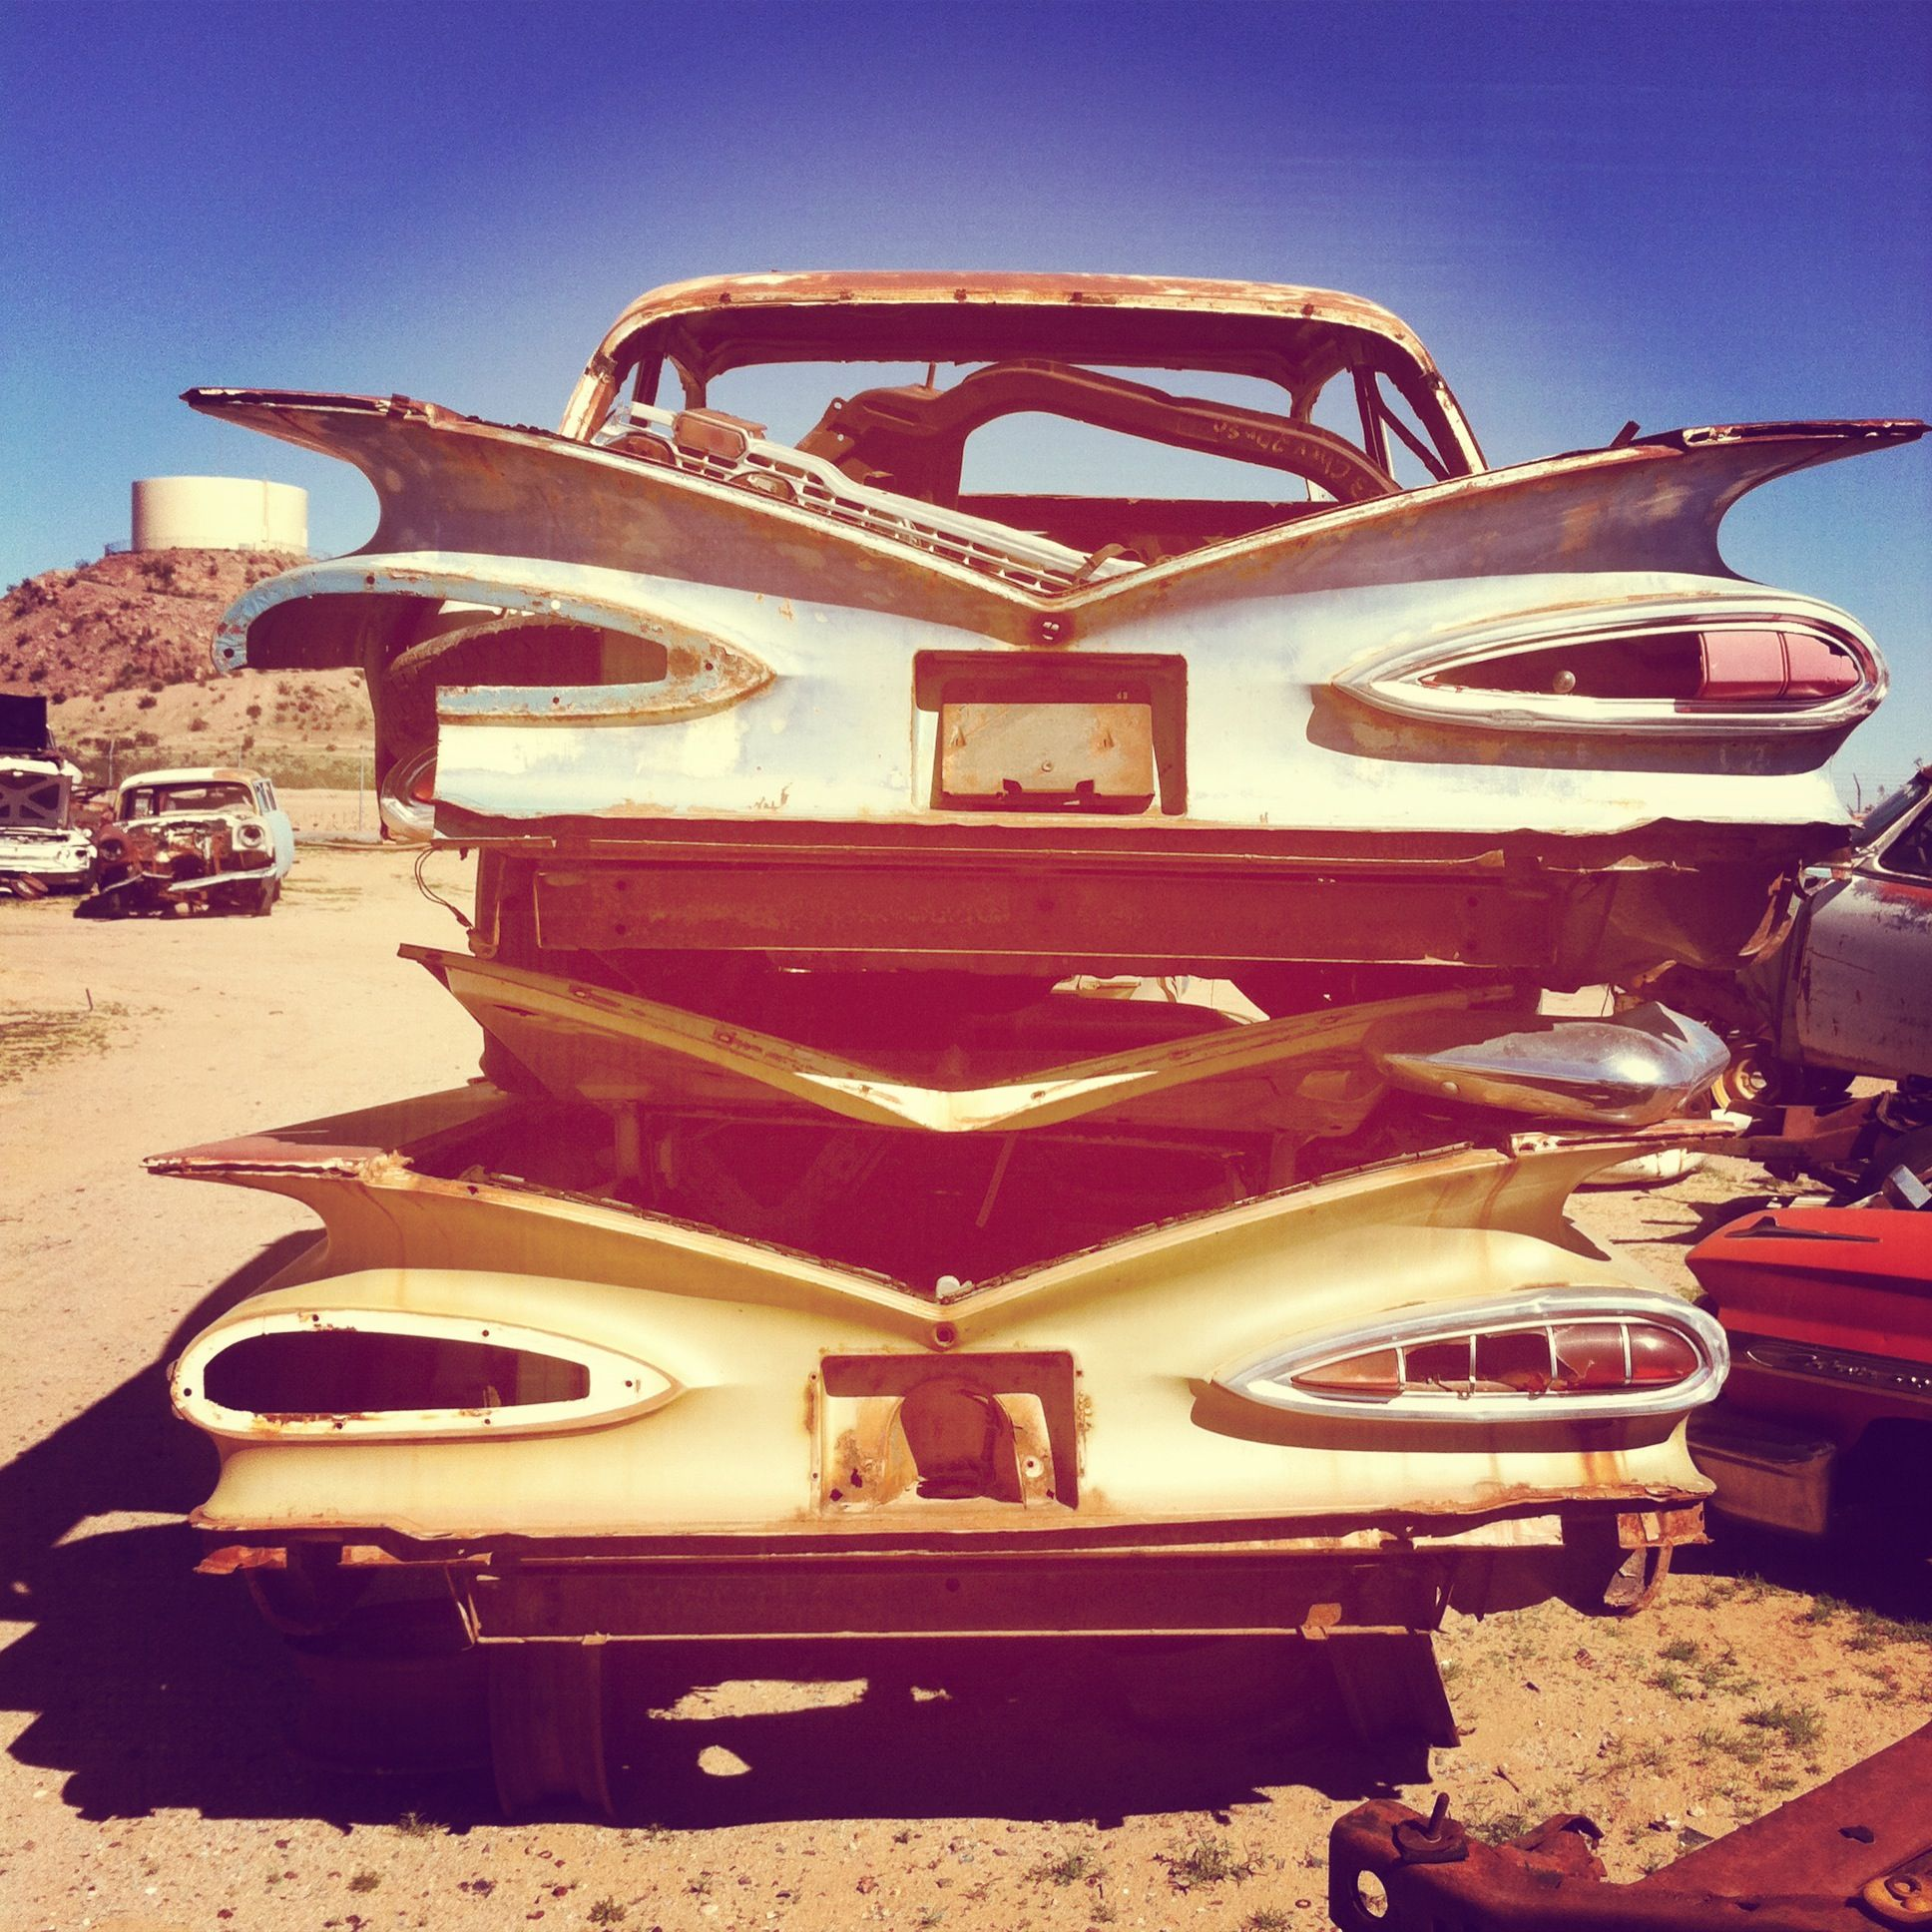 Stacked 1959 Chevy Impalas - Classic Car Junk Yard in AZ ...